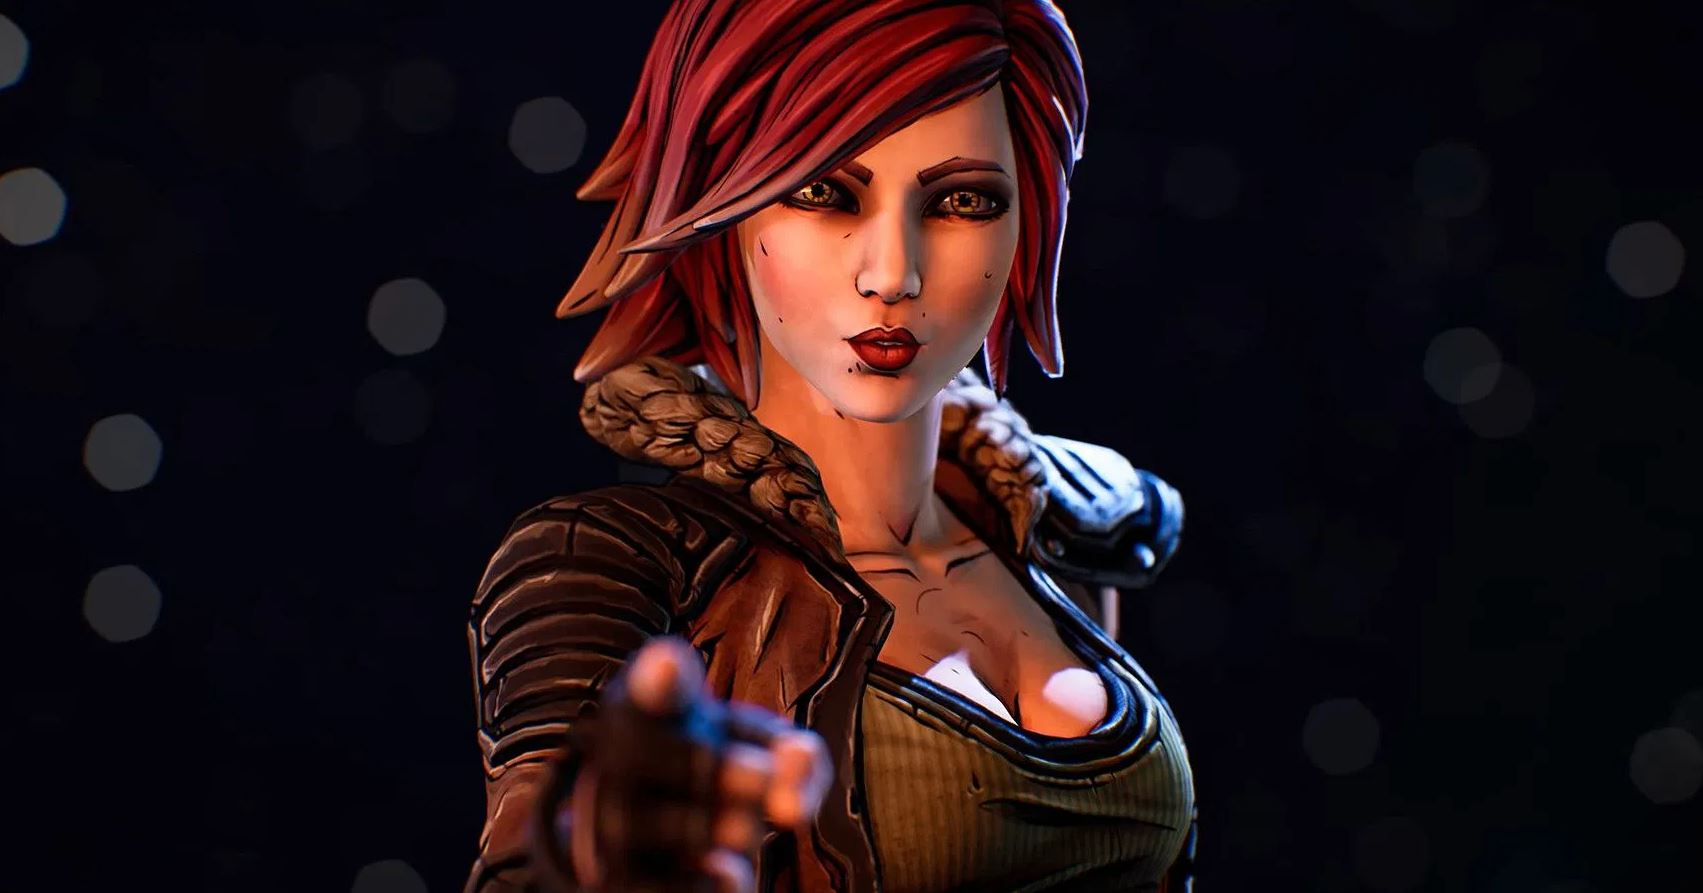 borderlands-movie-will-have-a-separate-canon-to-the-games-first-look-at-cate-blanchetts-lilith-revealed